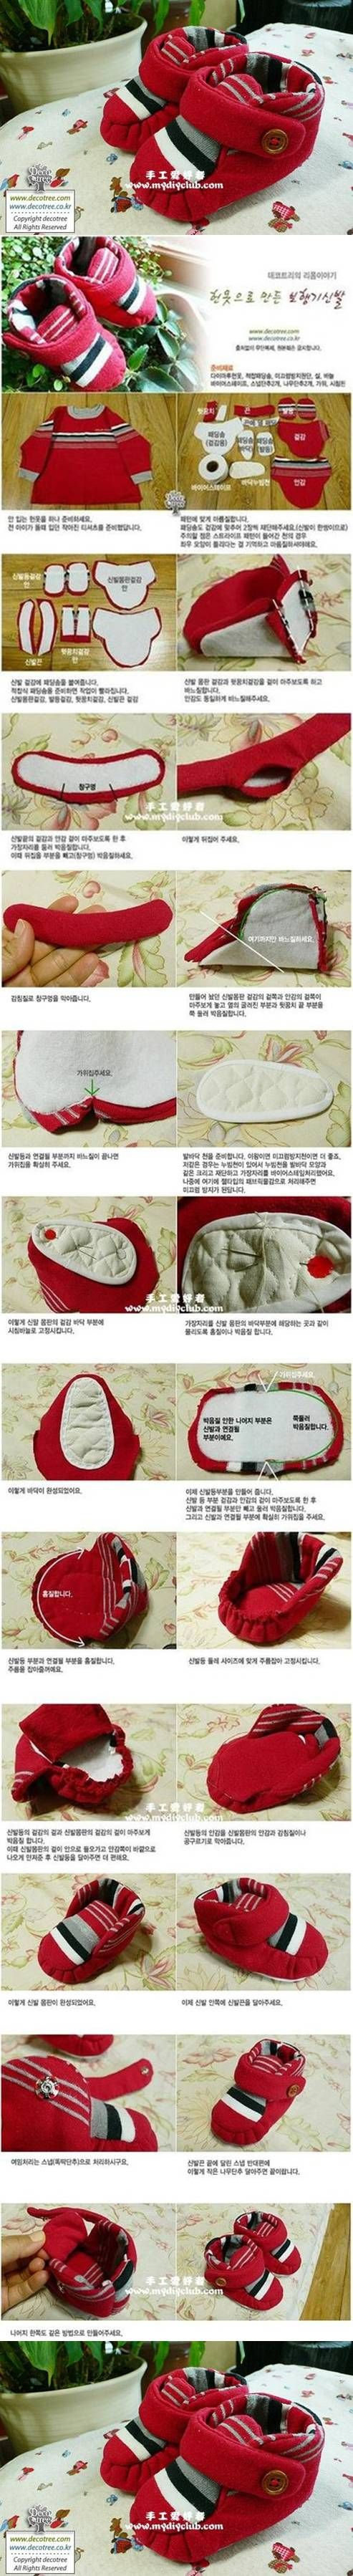 DIY Repurpose Baby Clothes into Baby Booties | iCreativeIdeas.com Follow Us on Facebook --> https://www.facebook.com/icreativeideas